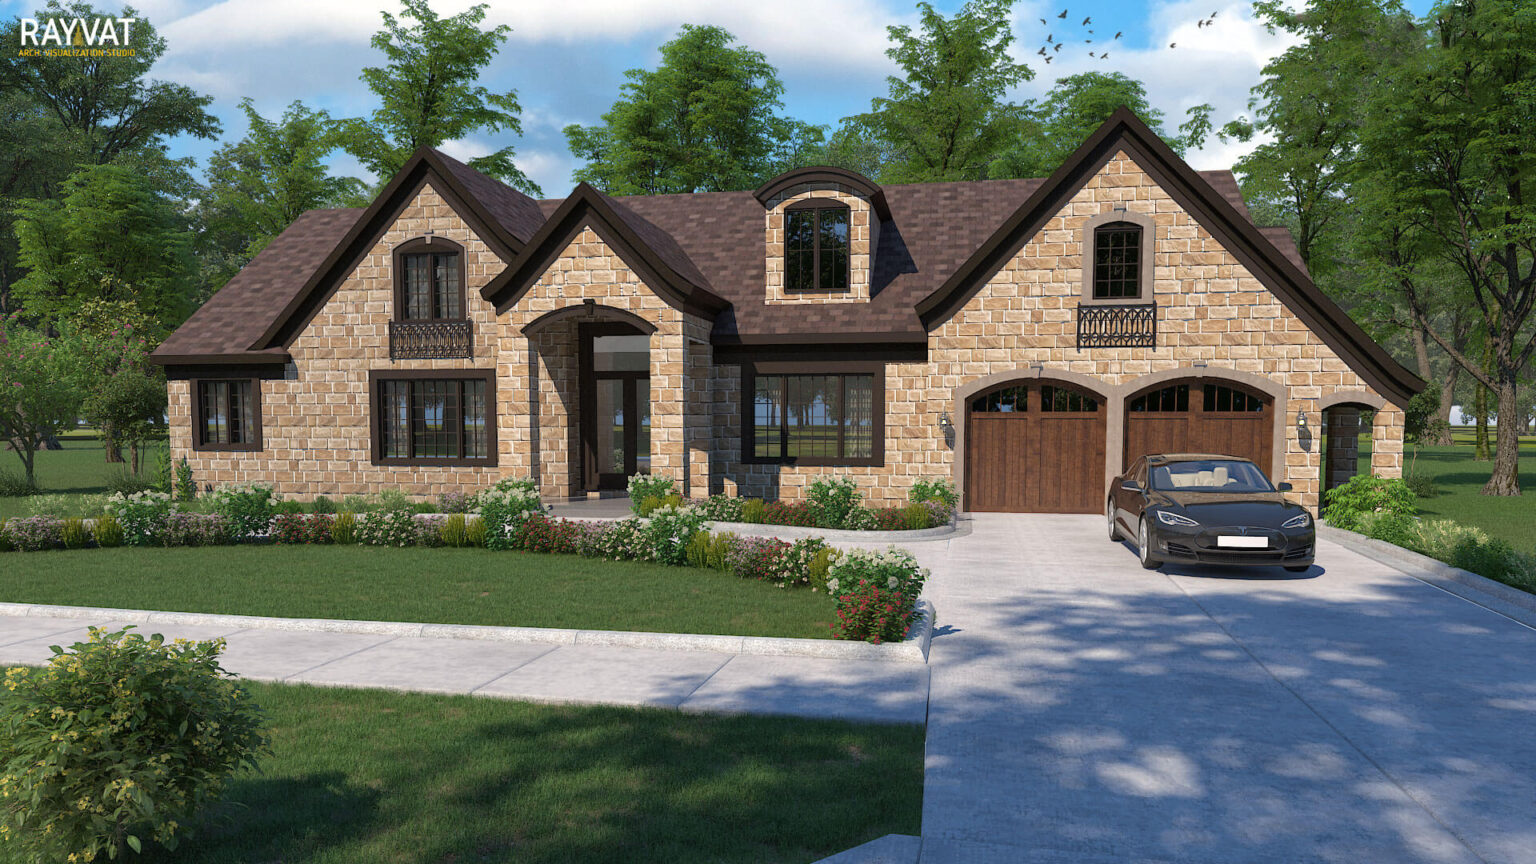 11. 'HOME SWEET HOME' - 3D EXTERIOR RENDERING OF HOUSE, DEARBORN, MI